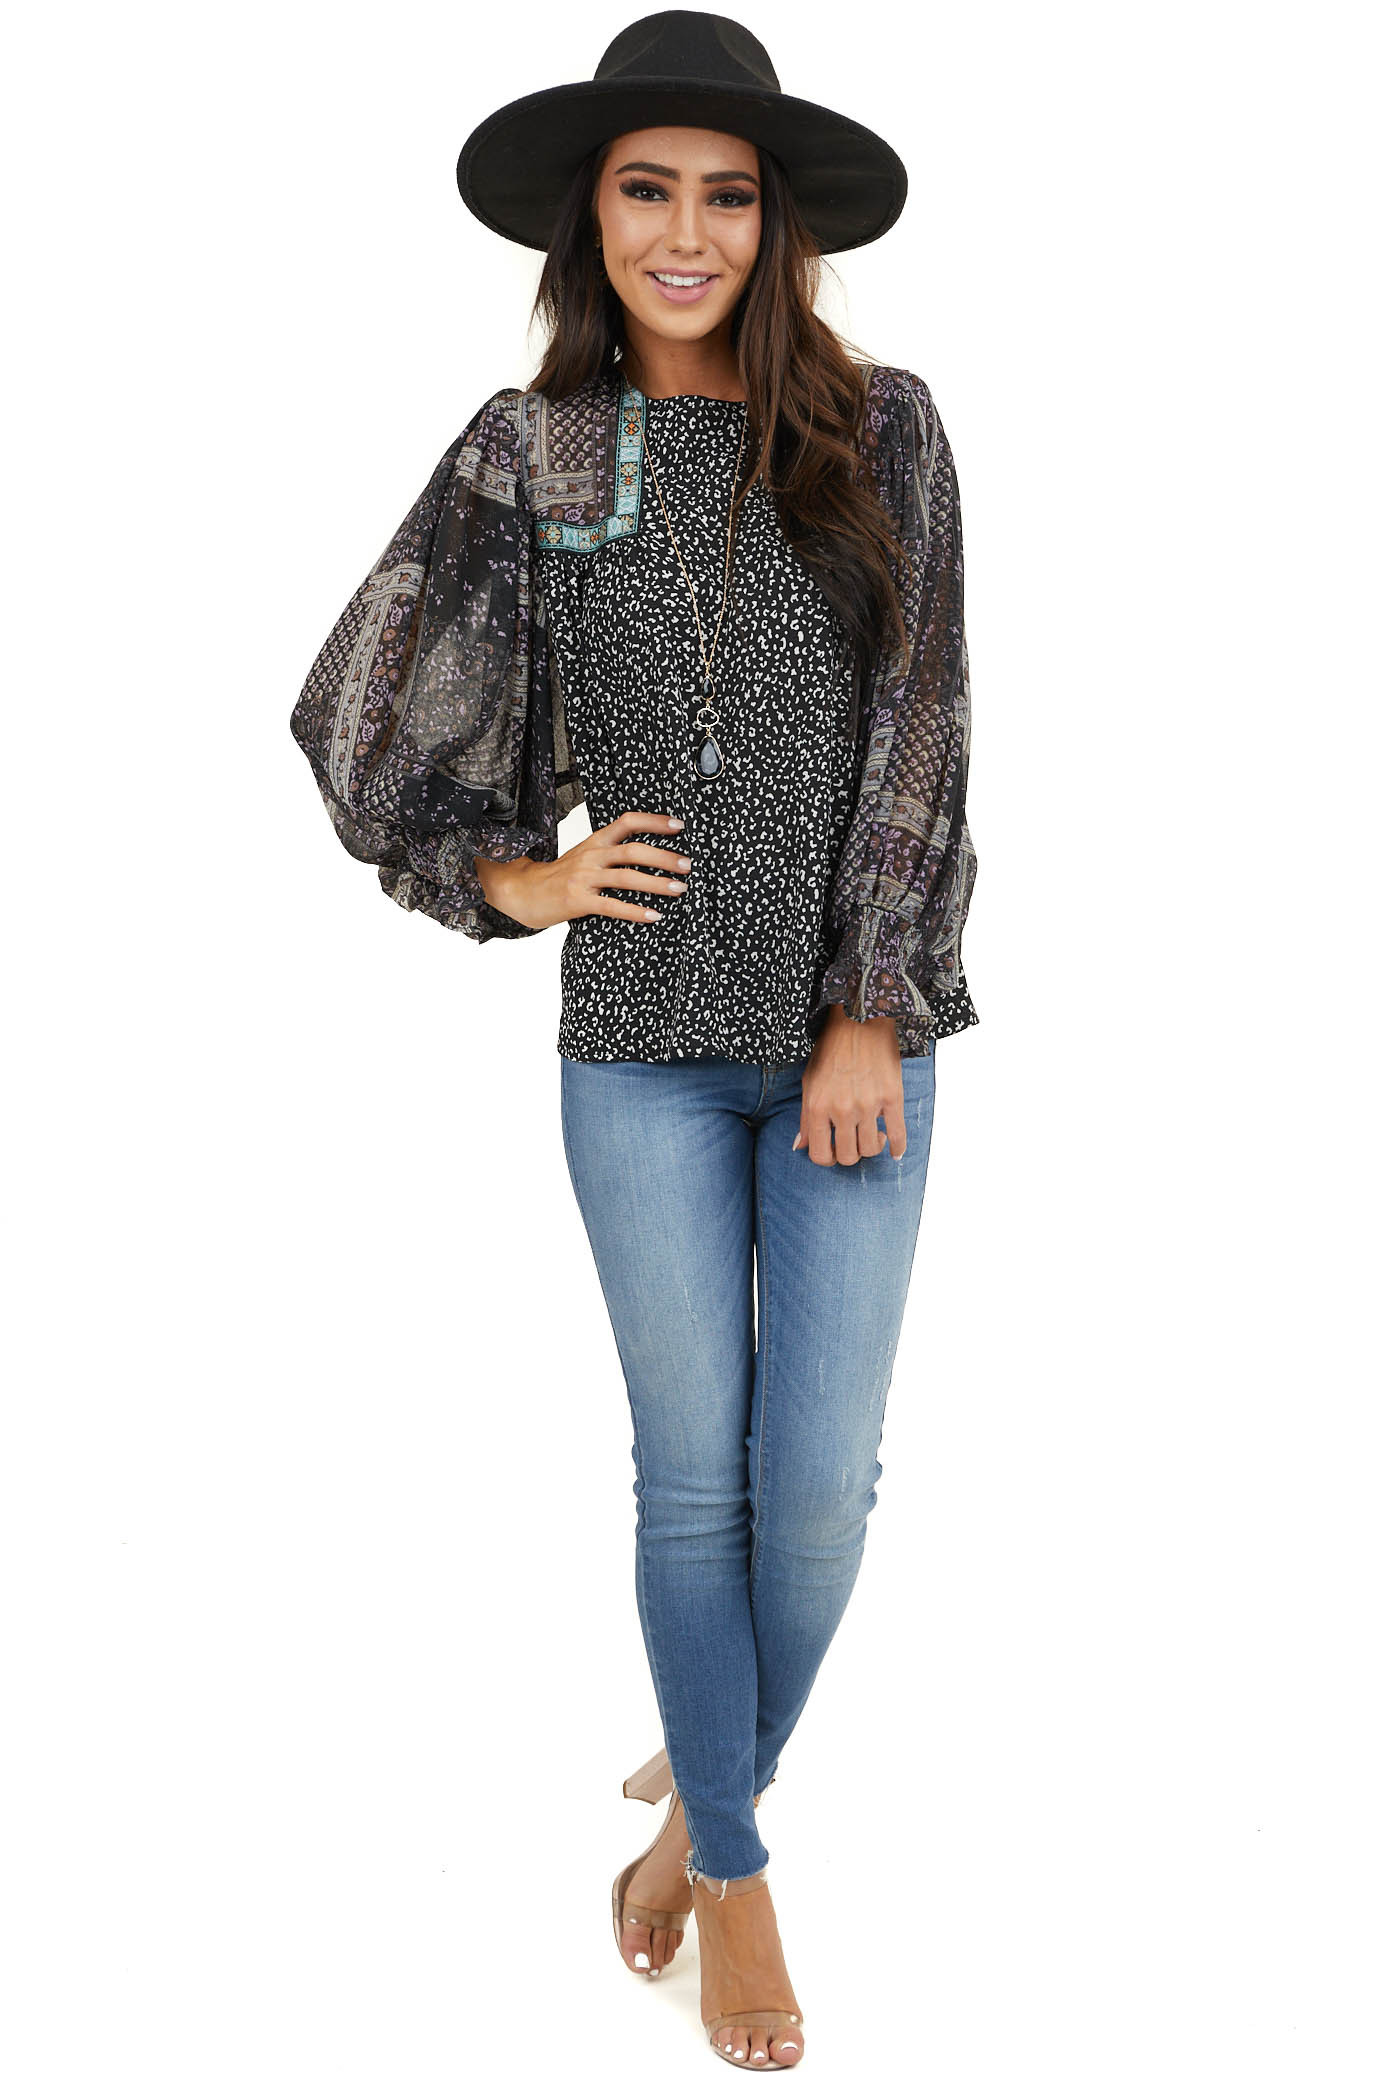 Black Leopard Print Woven Top with Patterned Dolman Sleeves